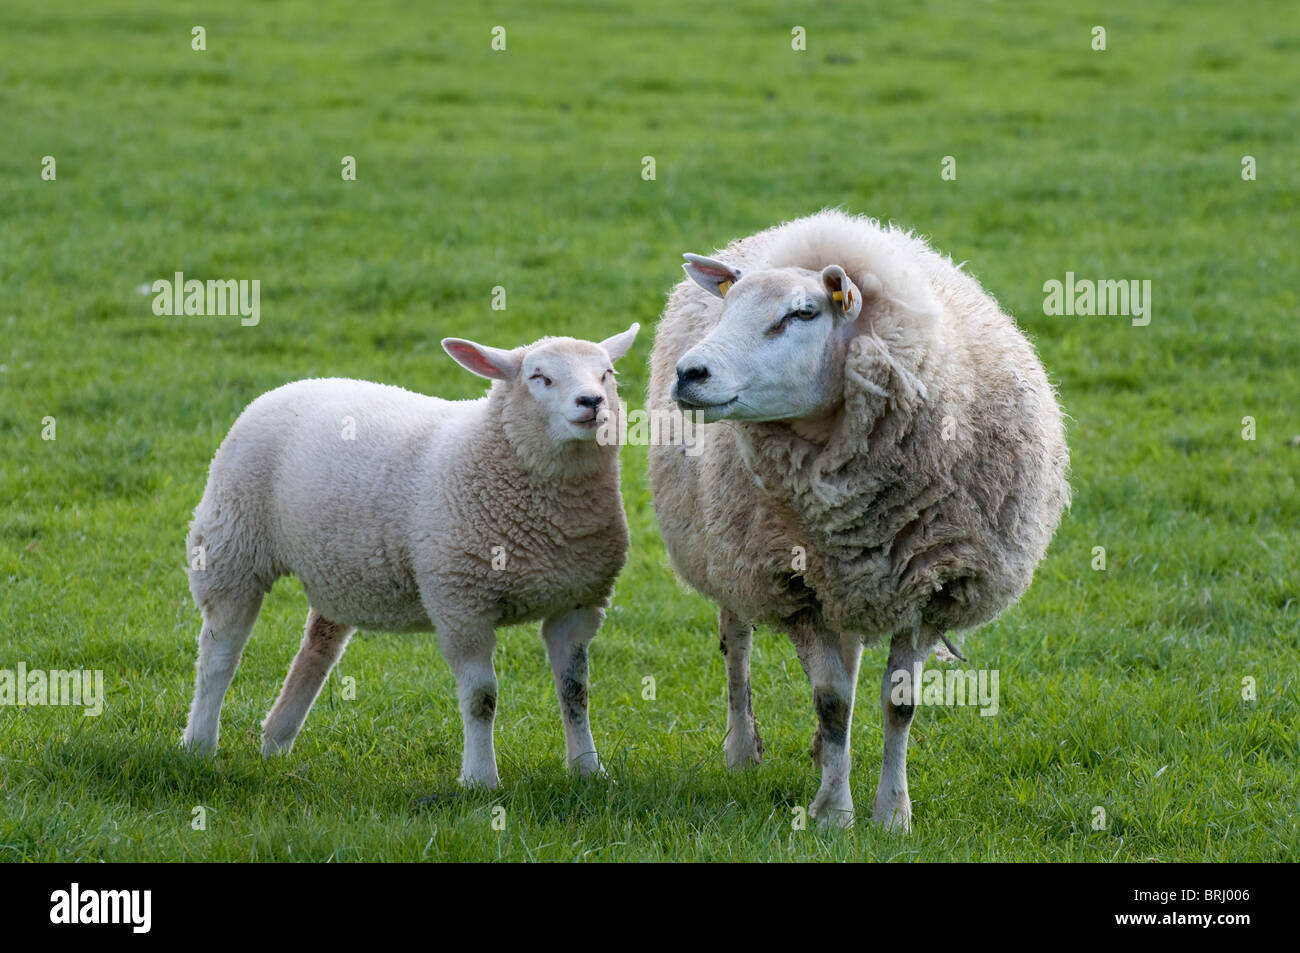 Sheep ewe with lamb at Texel, the Netherlands - Stock Image